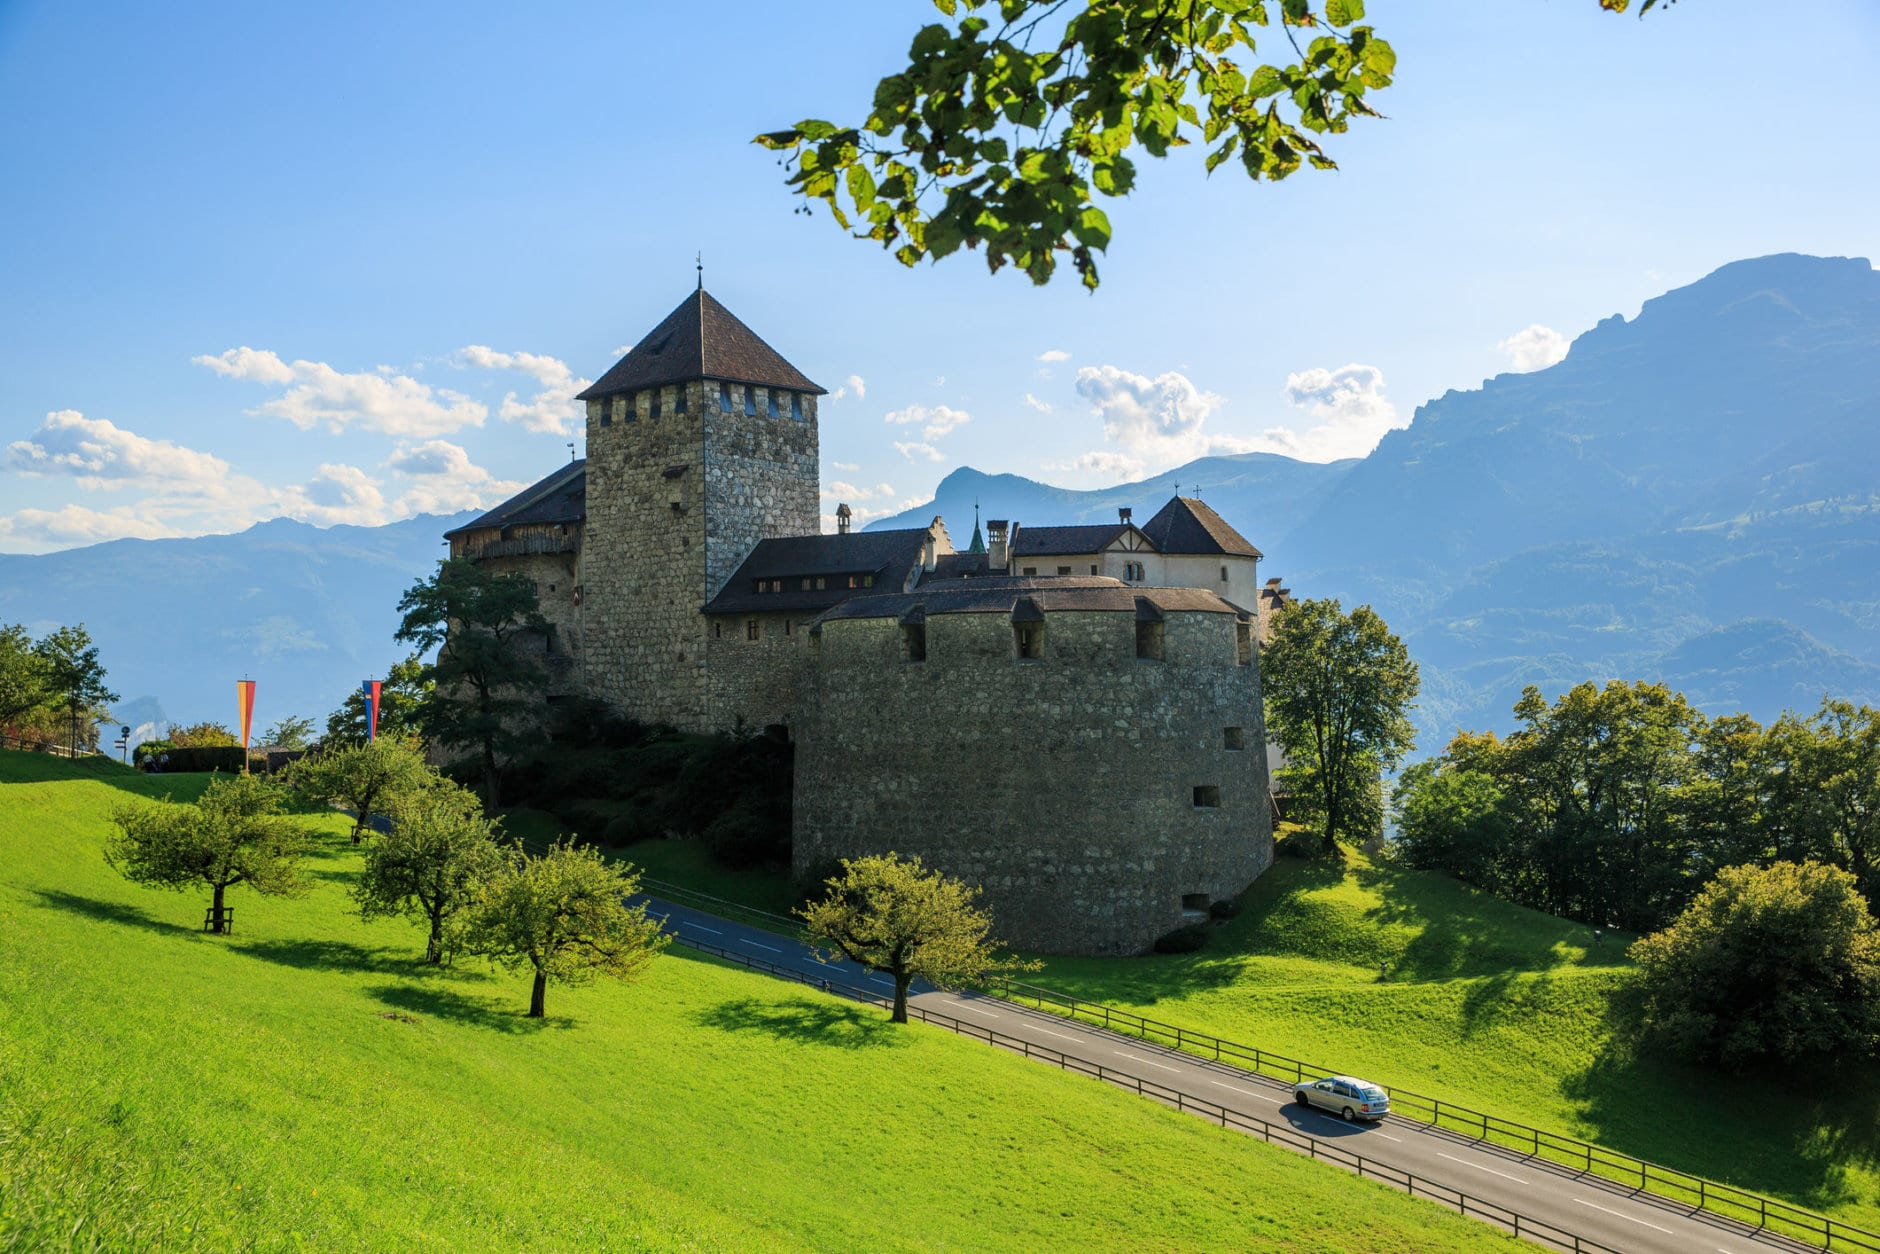 Vaduz Castle is located at the city of Vaduz, Liechtenstein on a hill overlooking the city. Tourists often assume that they can visit the castle but the Prince of Liechtenstein and his family actually lives in the castle so entry is not allowed. (Getty Images/iStockphoto/Gökçen TUNÇ)